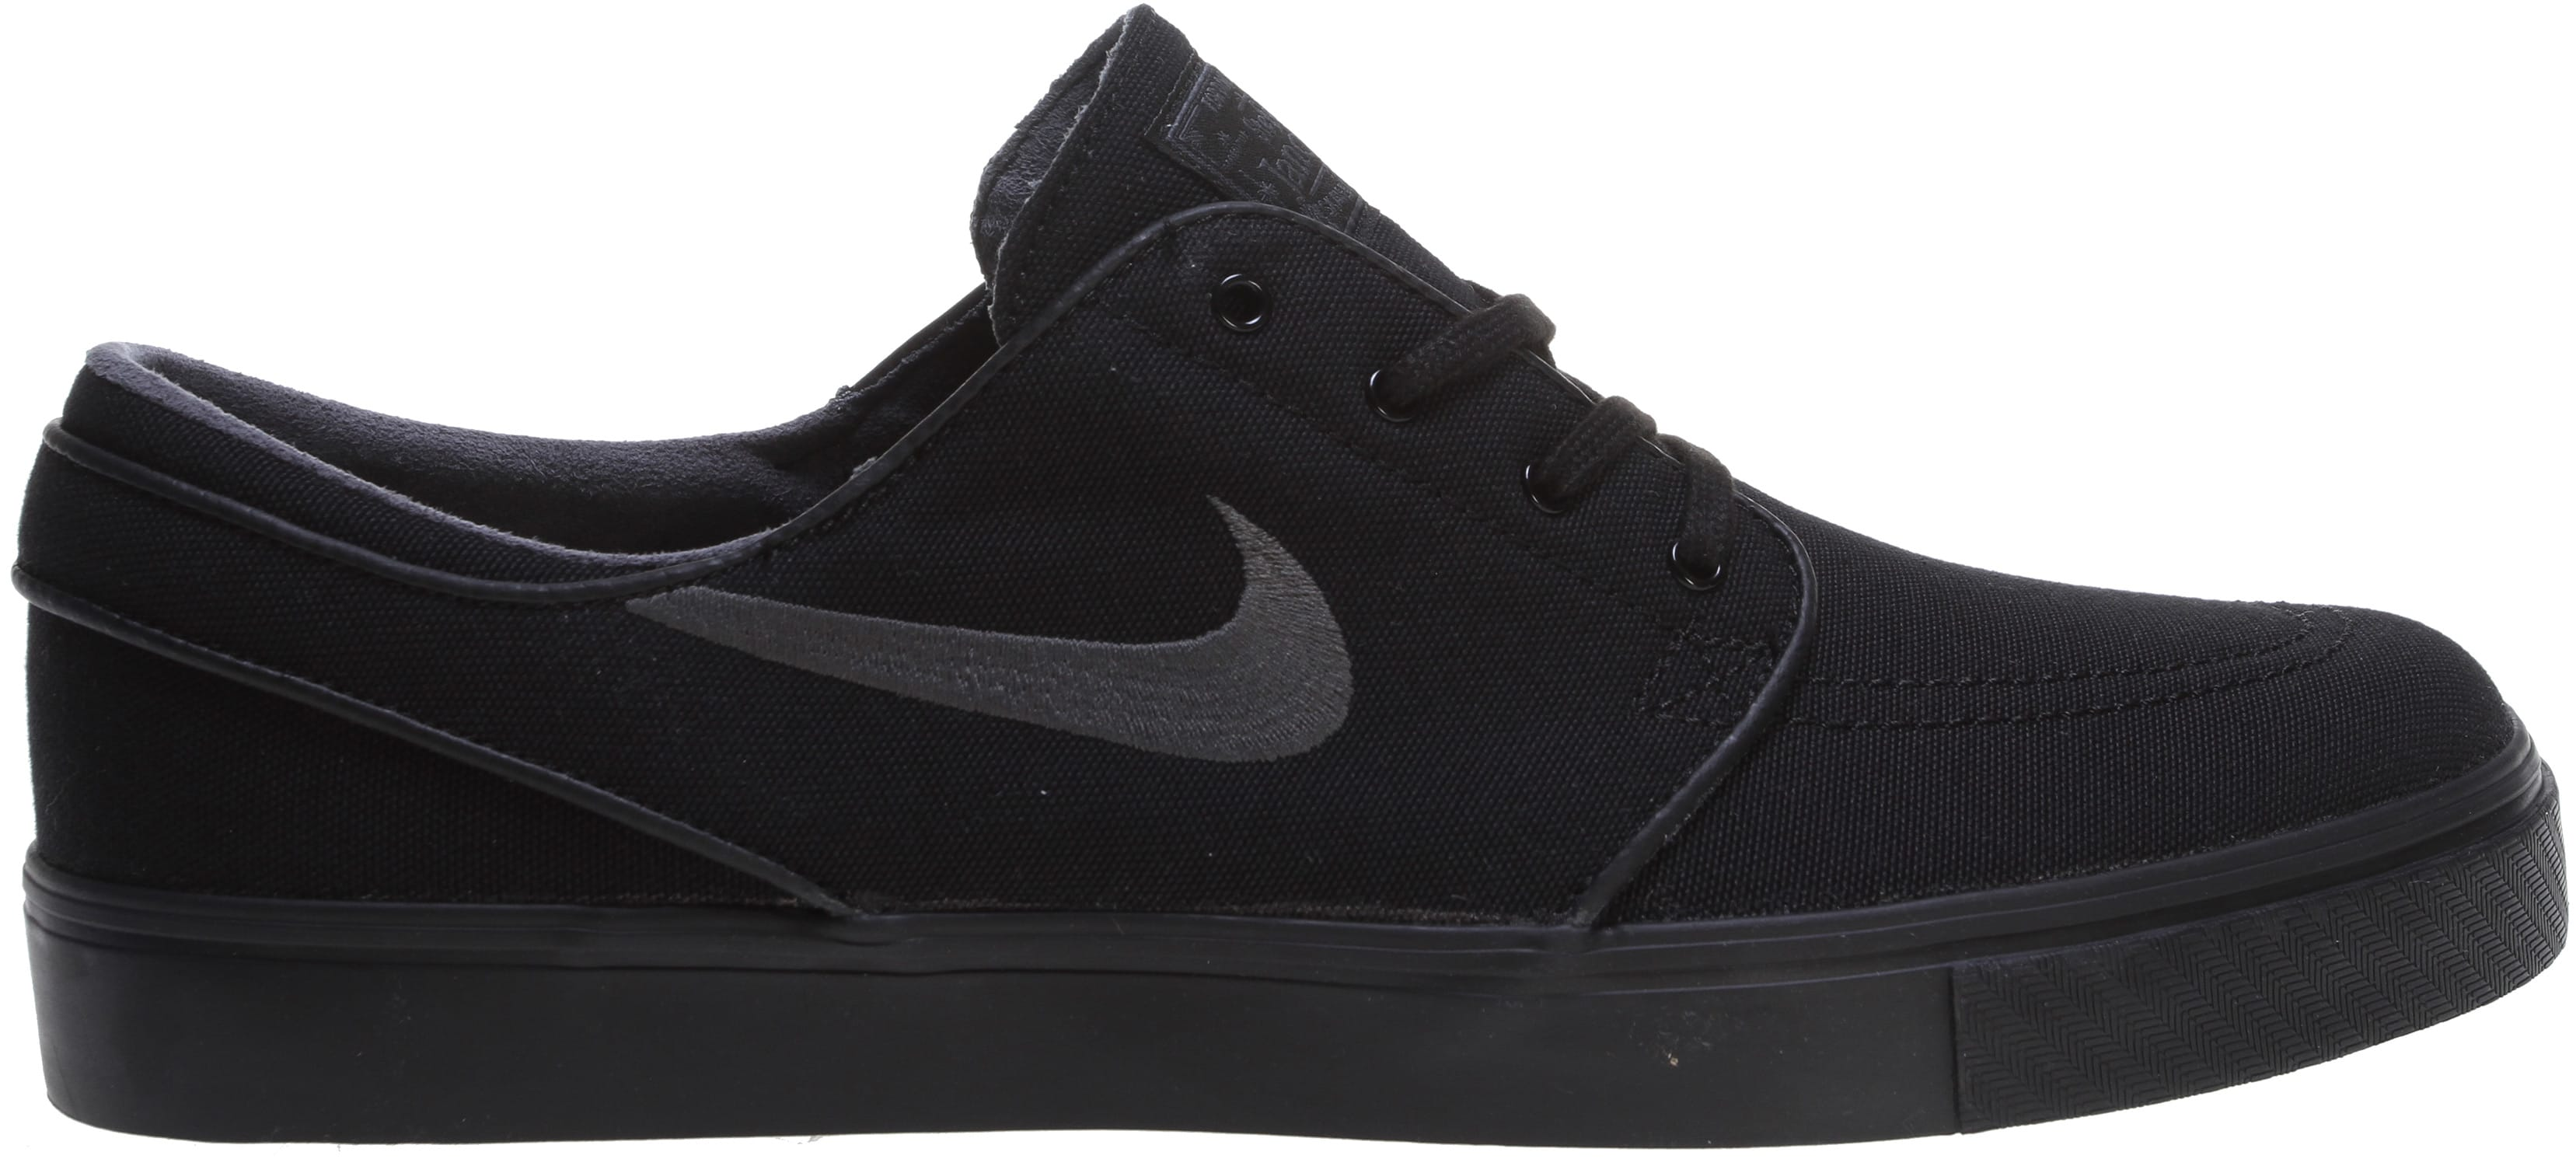 quality design 548b4 7710f nike-zm-stefan-janoski-canvas-shoes-blk-anthracite-15.jpg